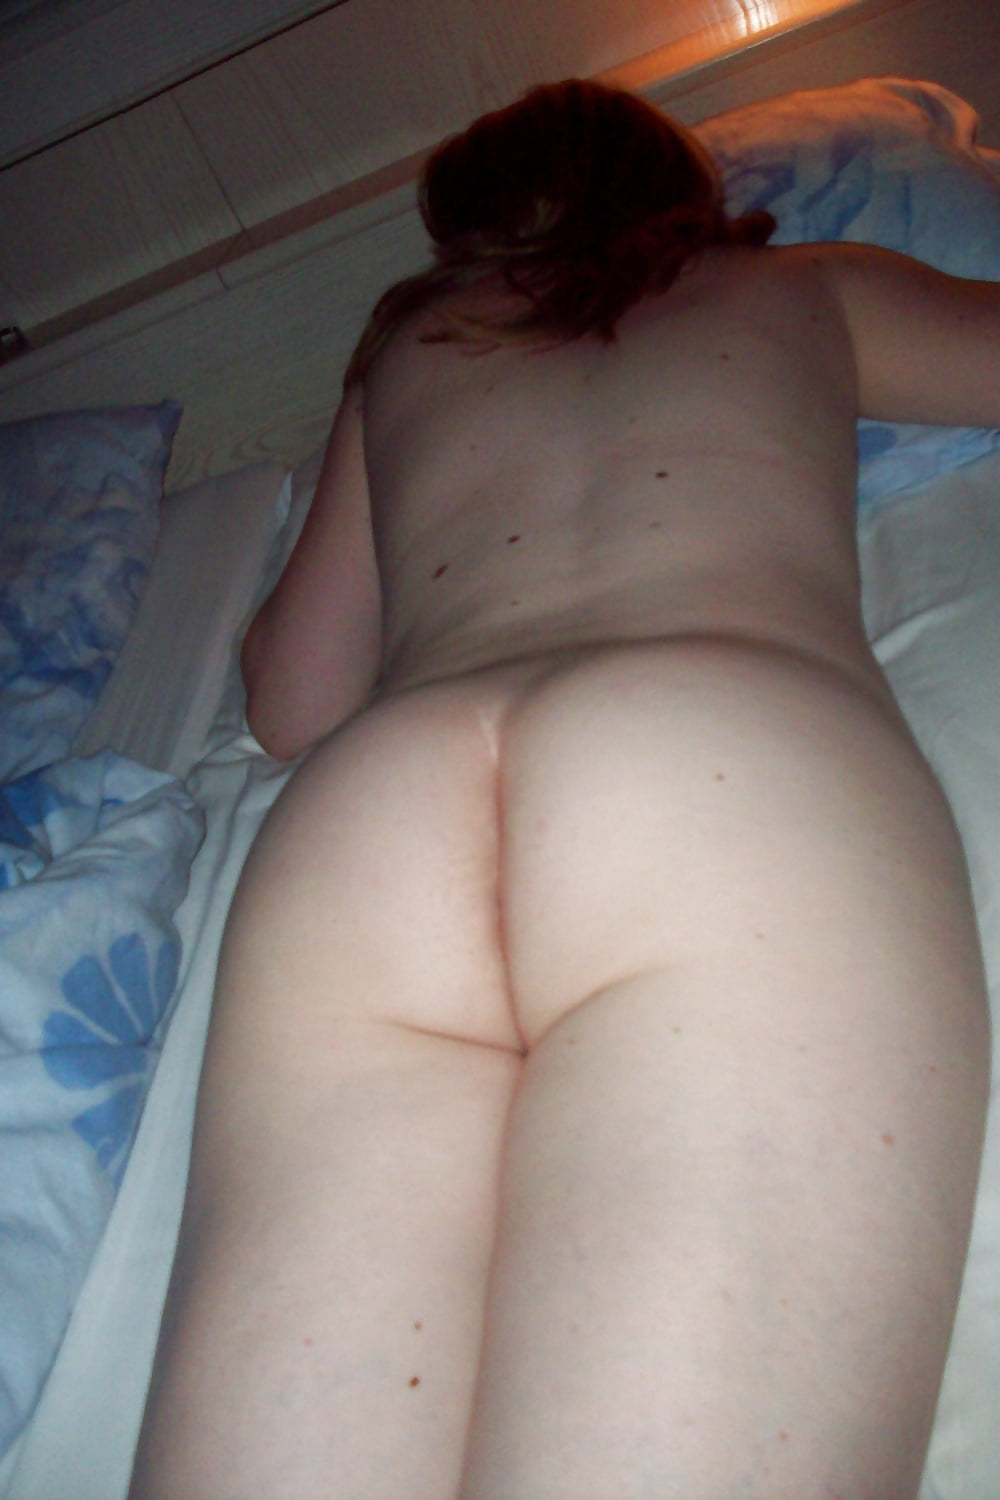 Panty line of the ass